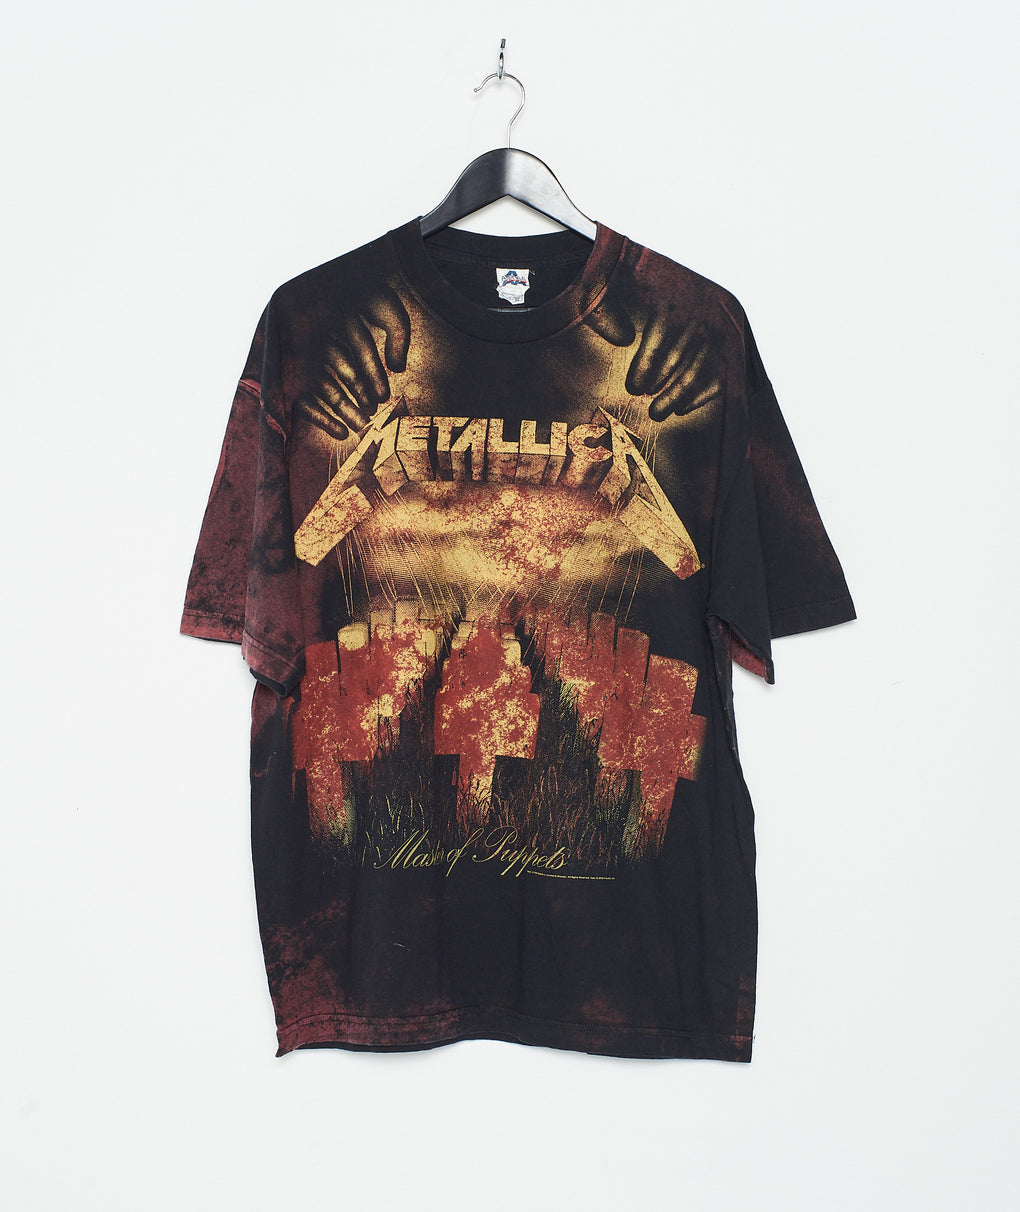 Metallica Master of Puppets Tee (XL)